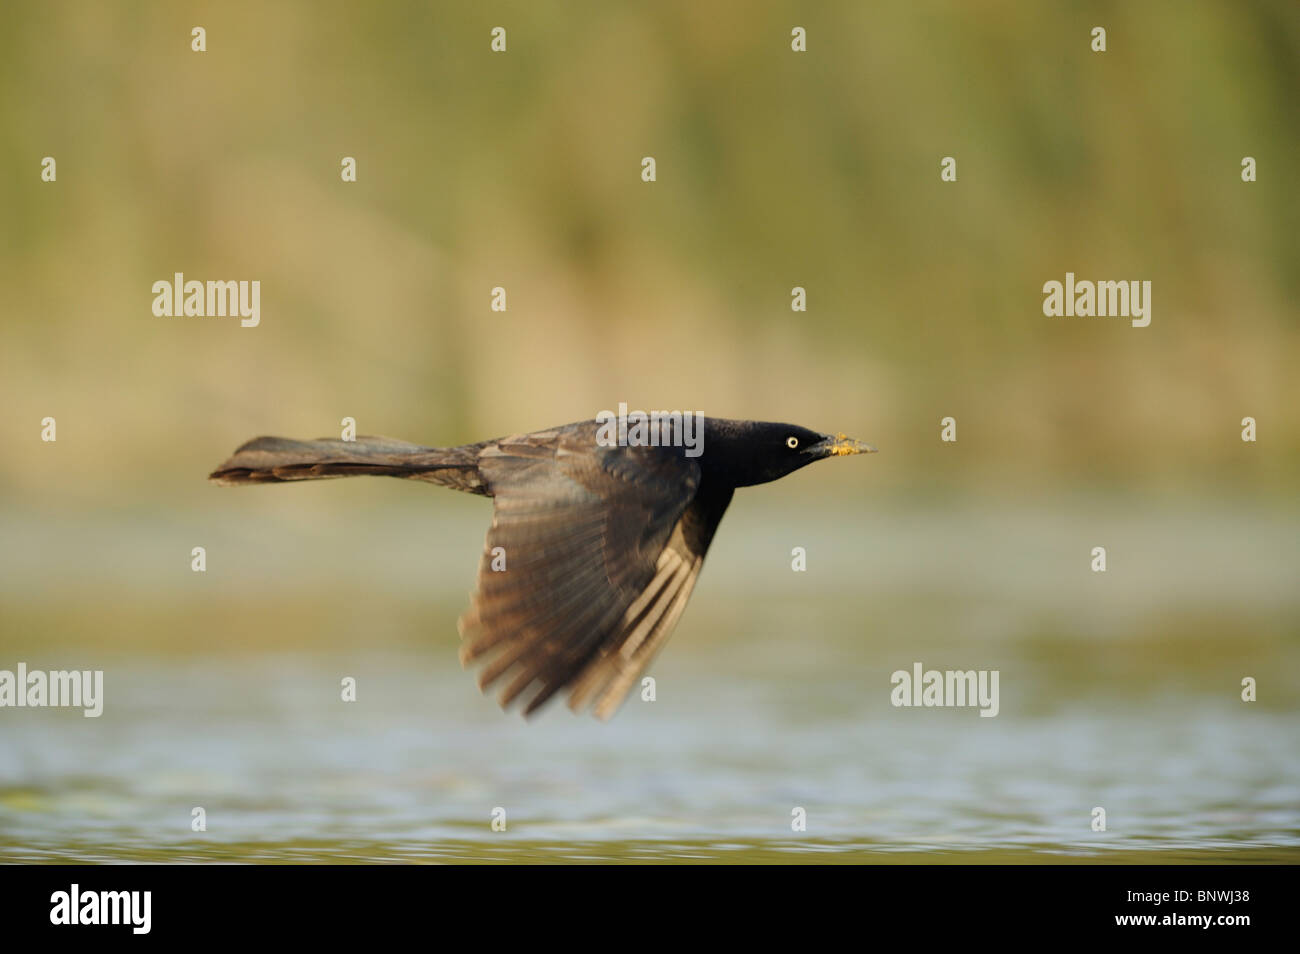 Great-tailed Grackle (Quiscalus mexicanus), male in flight, Fennessey Ranch, Refugio, Corpus Christi, Coastal Bend, - Stock Image